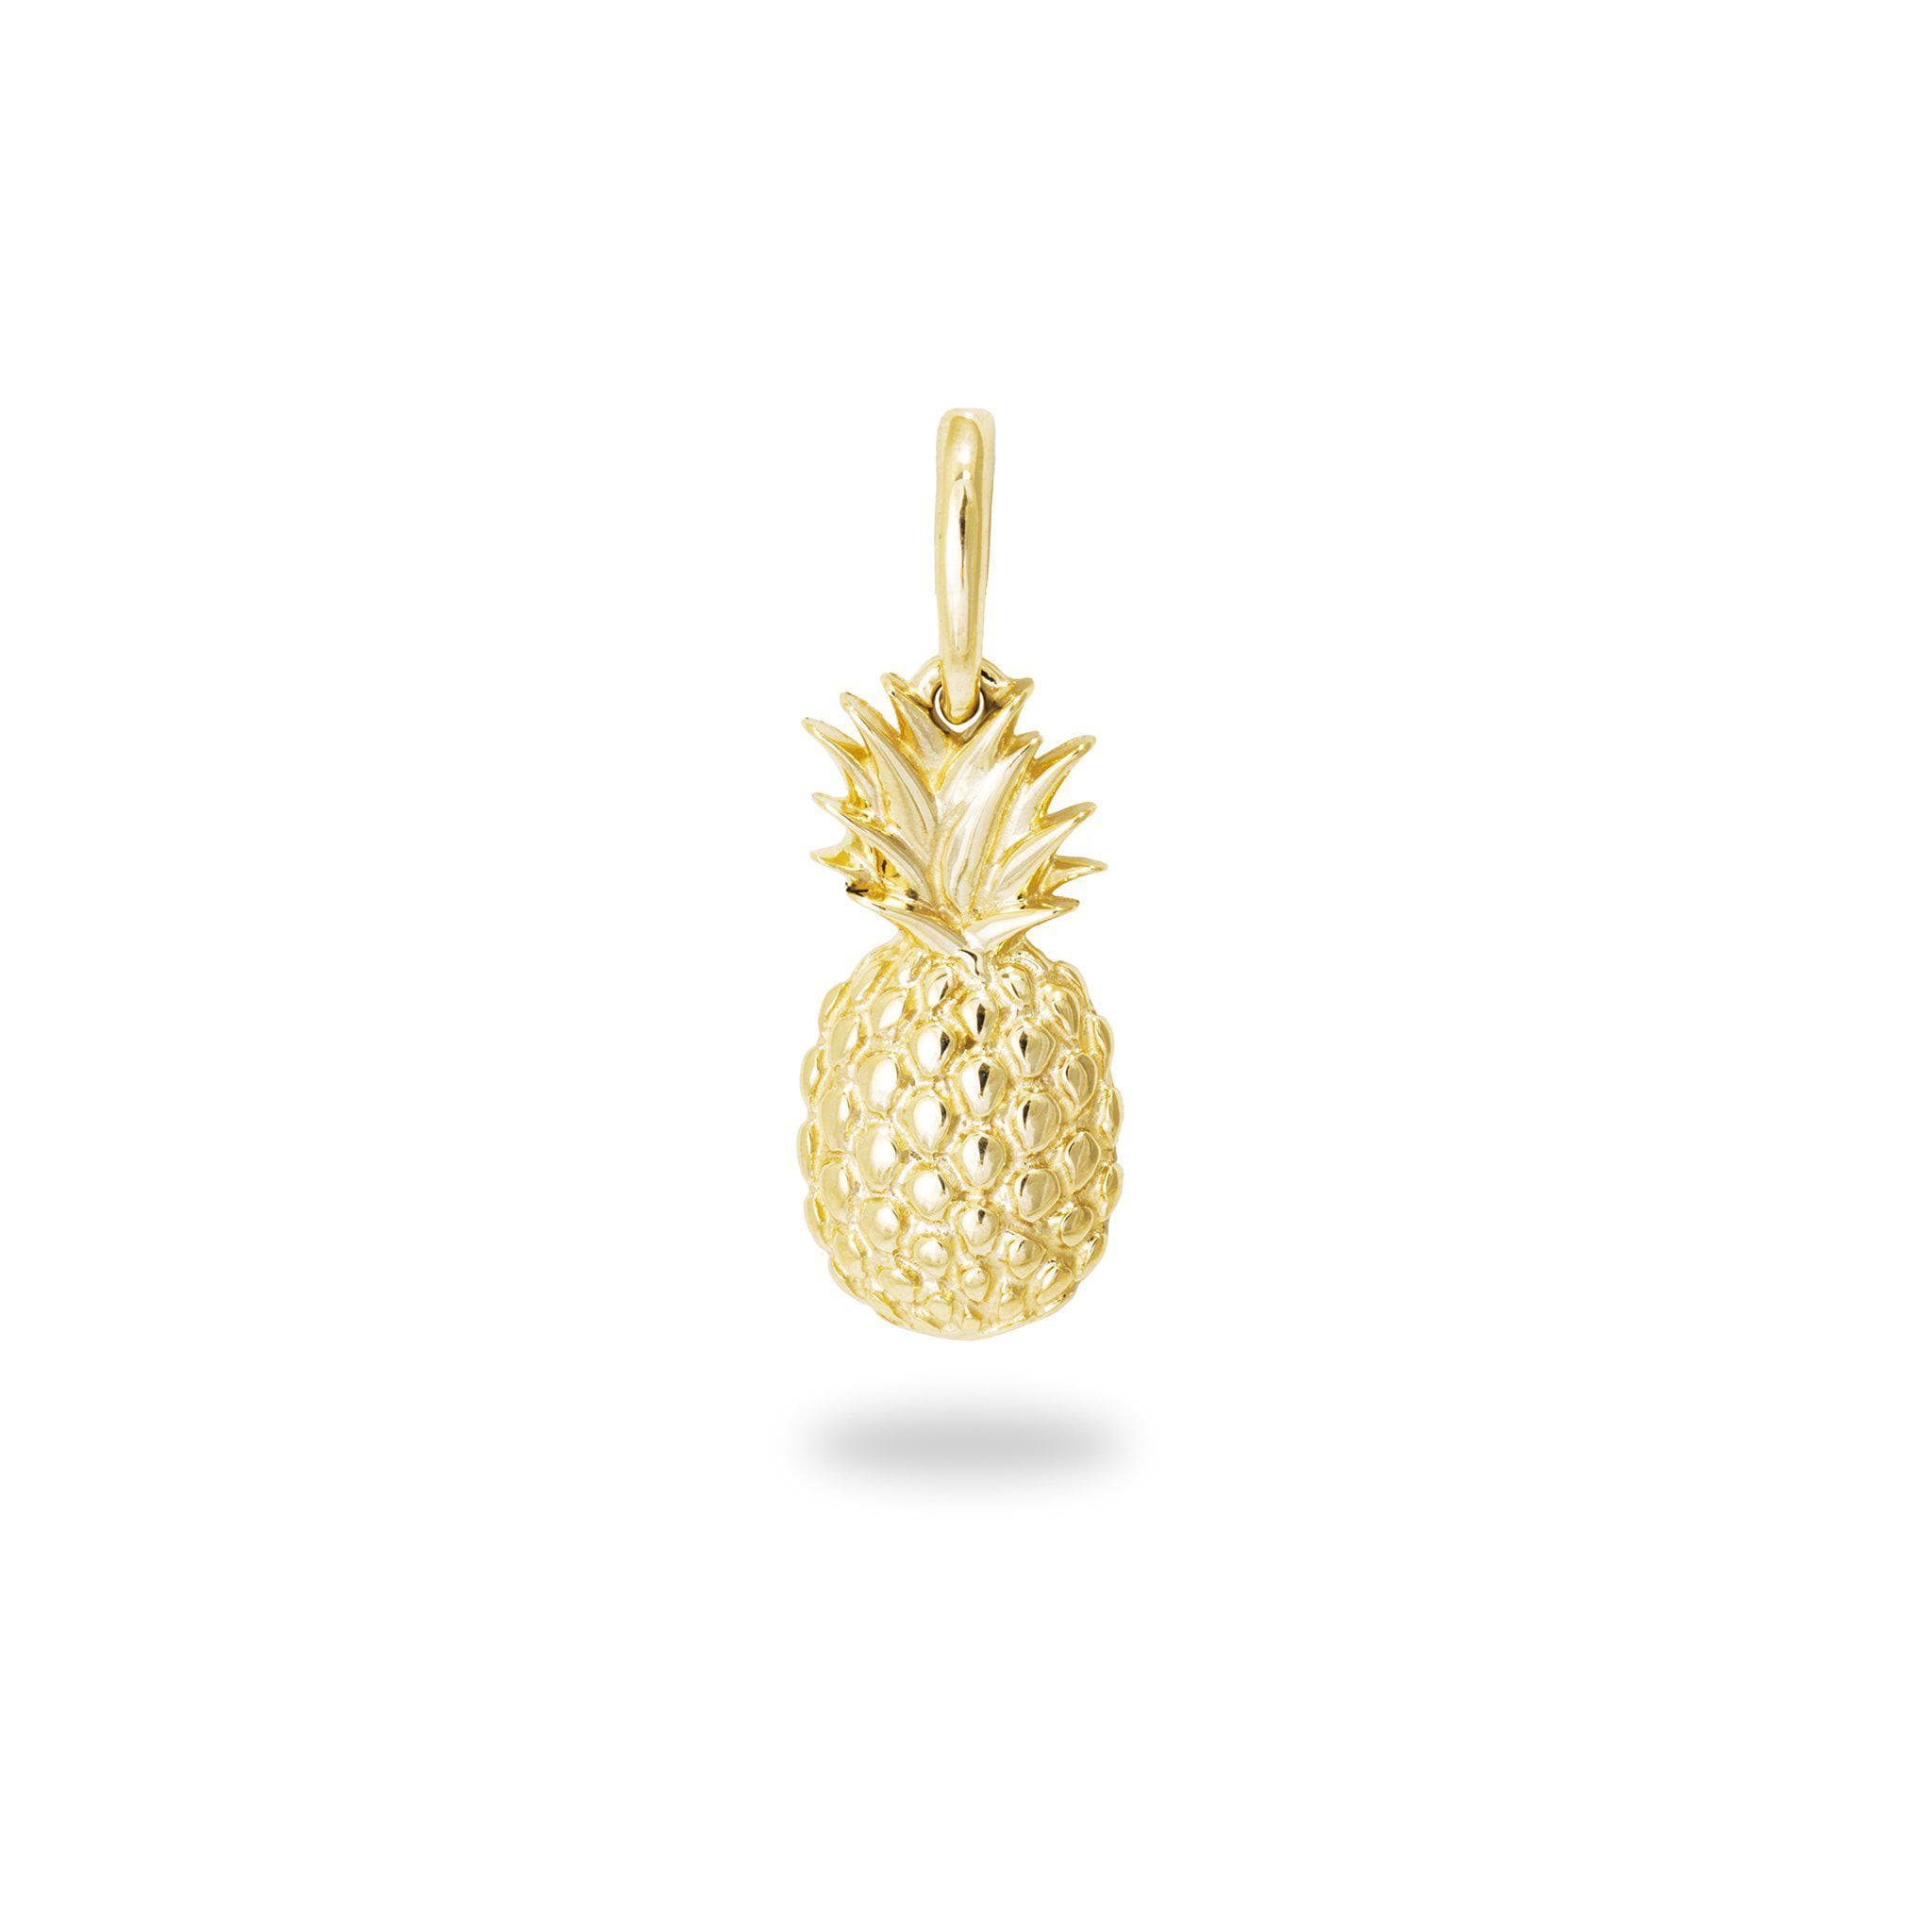 rose friendship vila products gold rosa necklace silver elegant pineapple